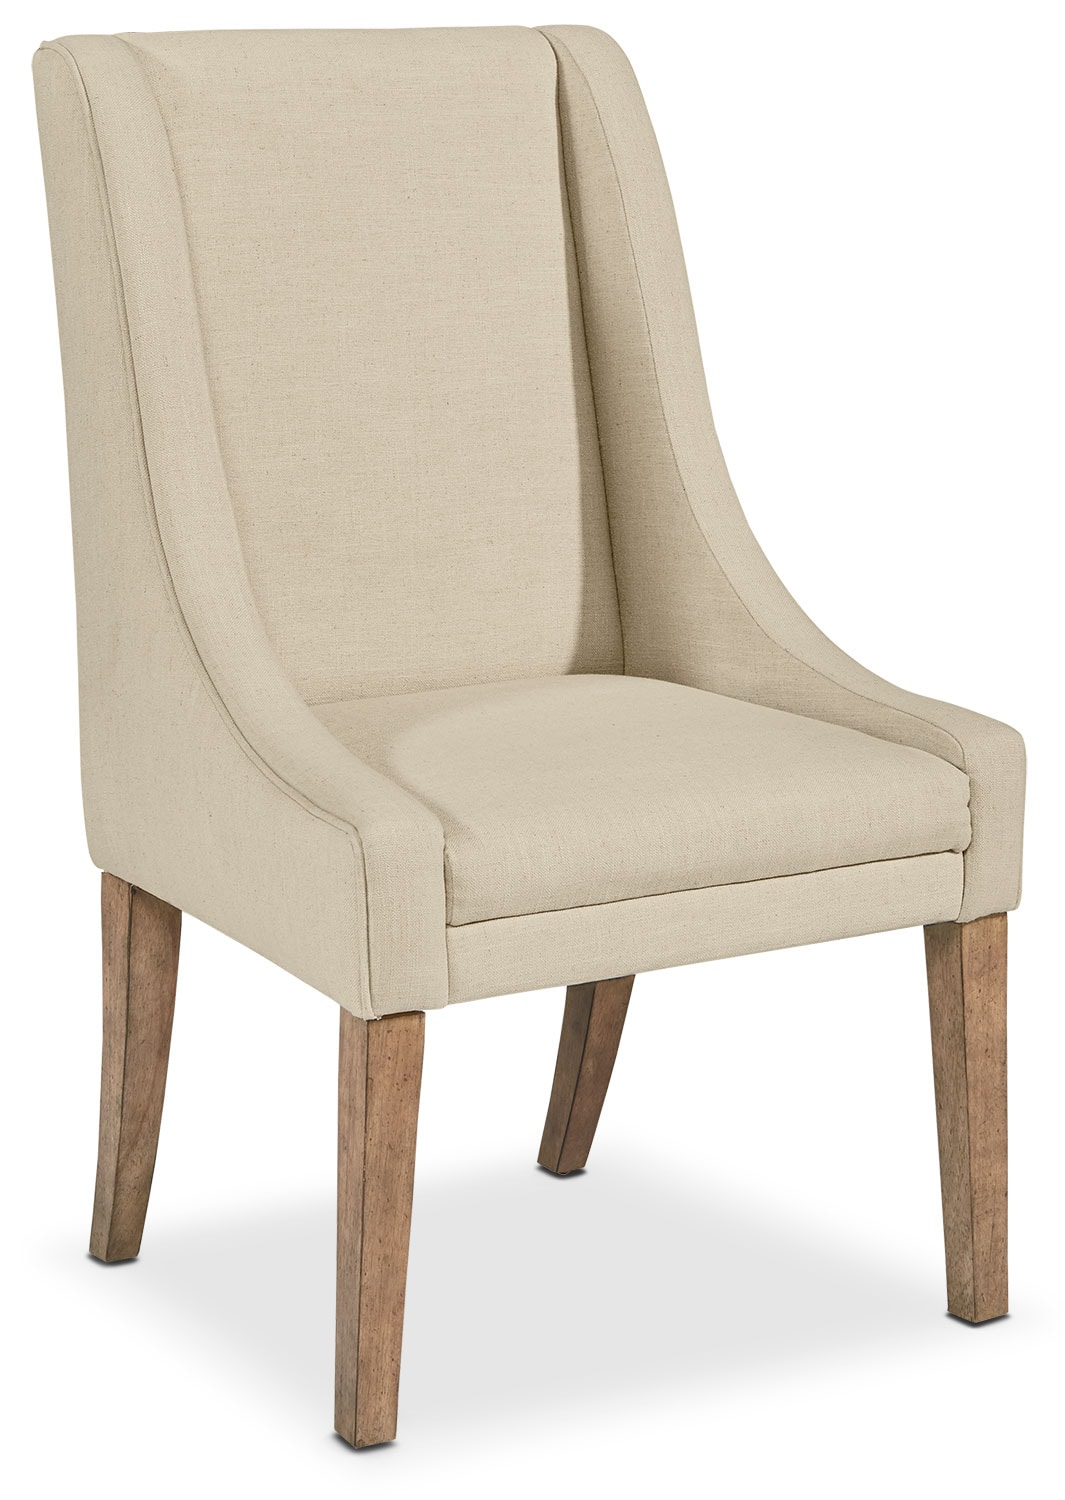 Set of 2 French Demi-Wing Upholstered Side Chairs - Linen